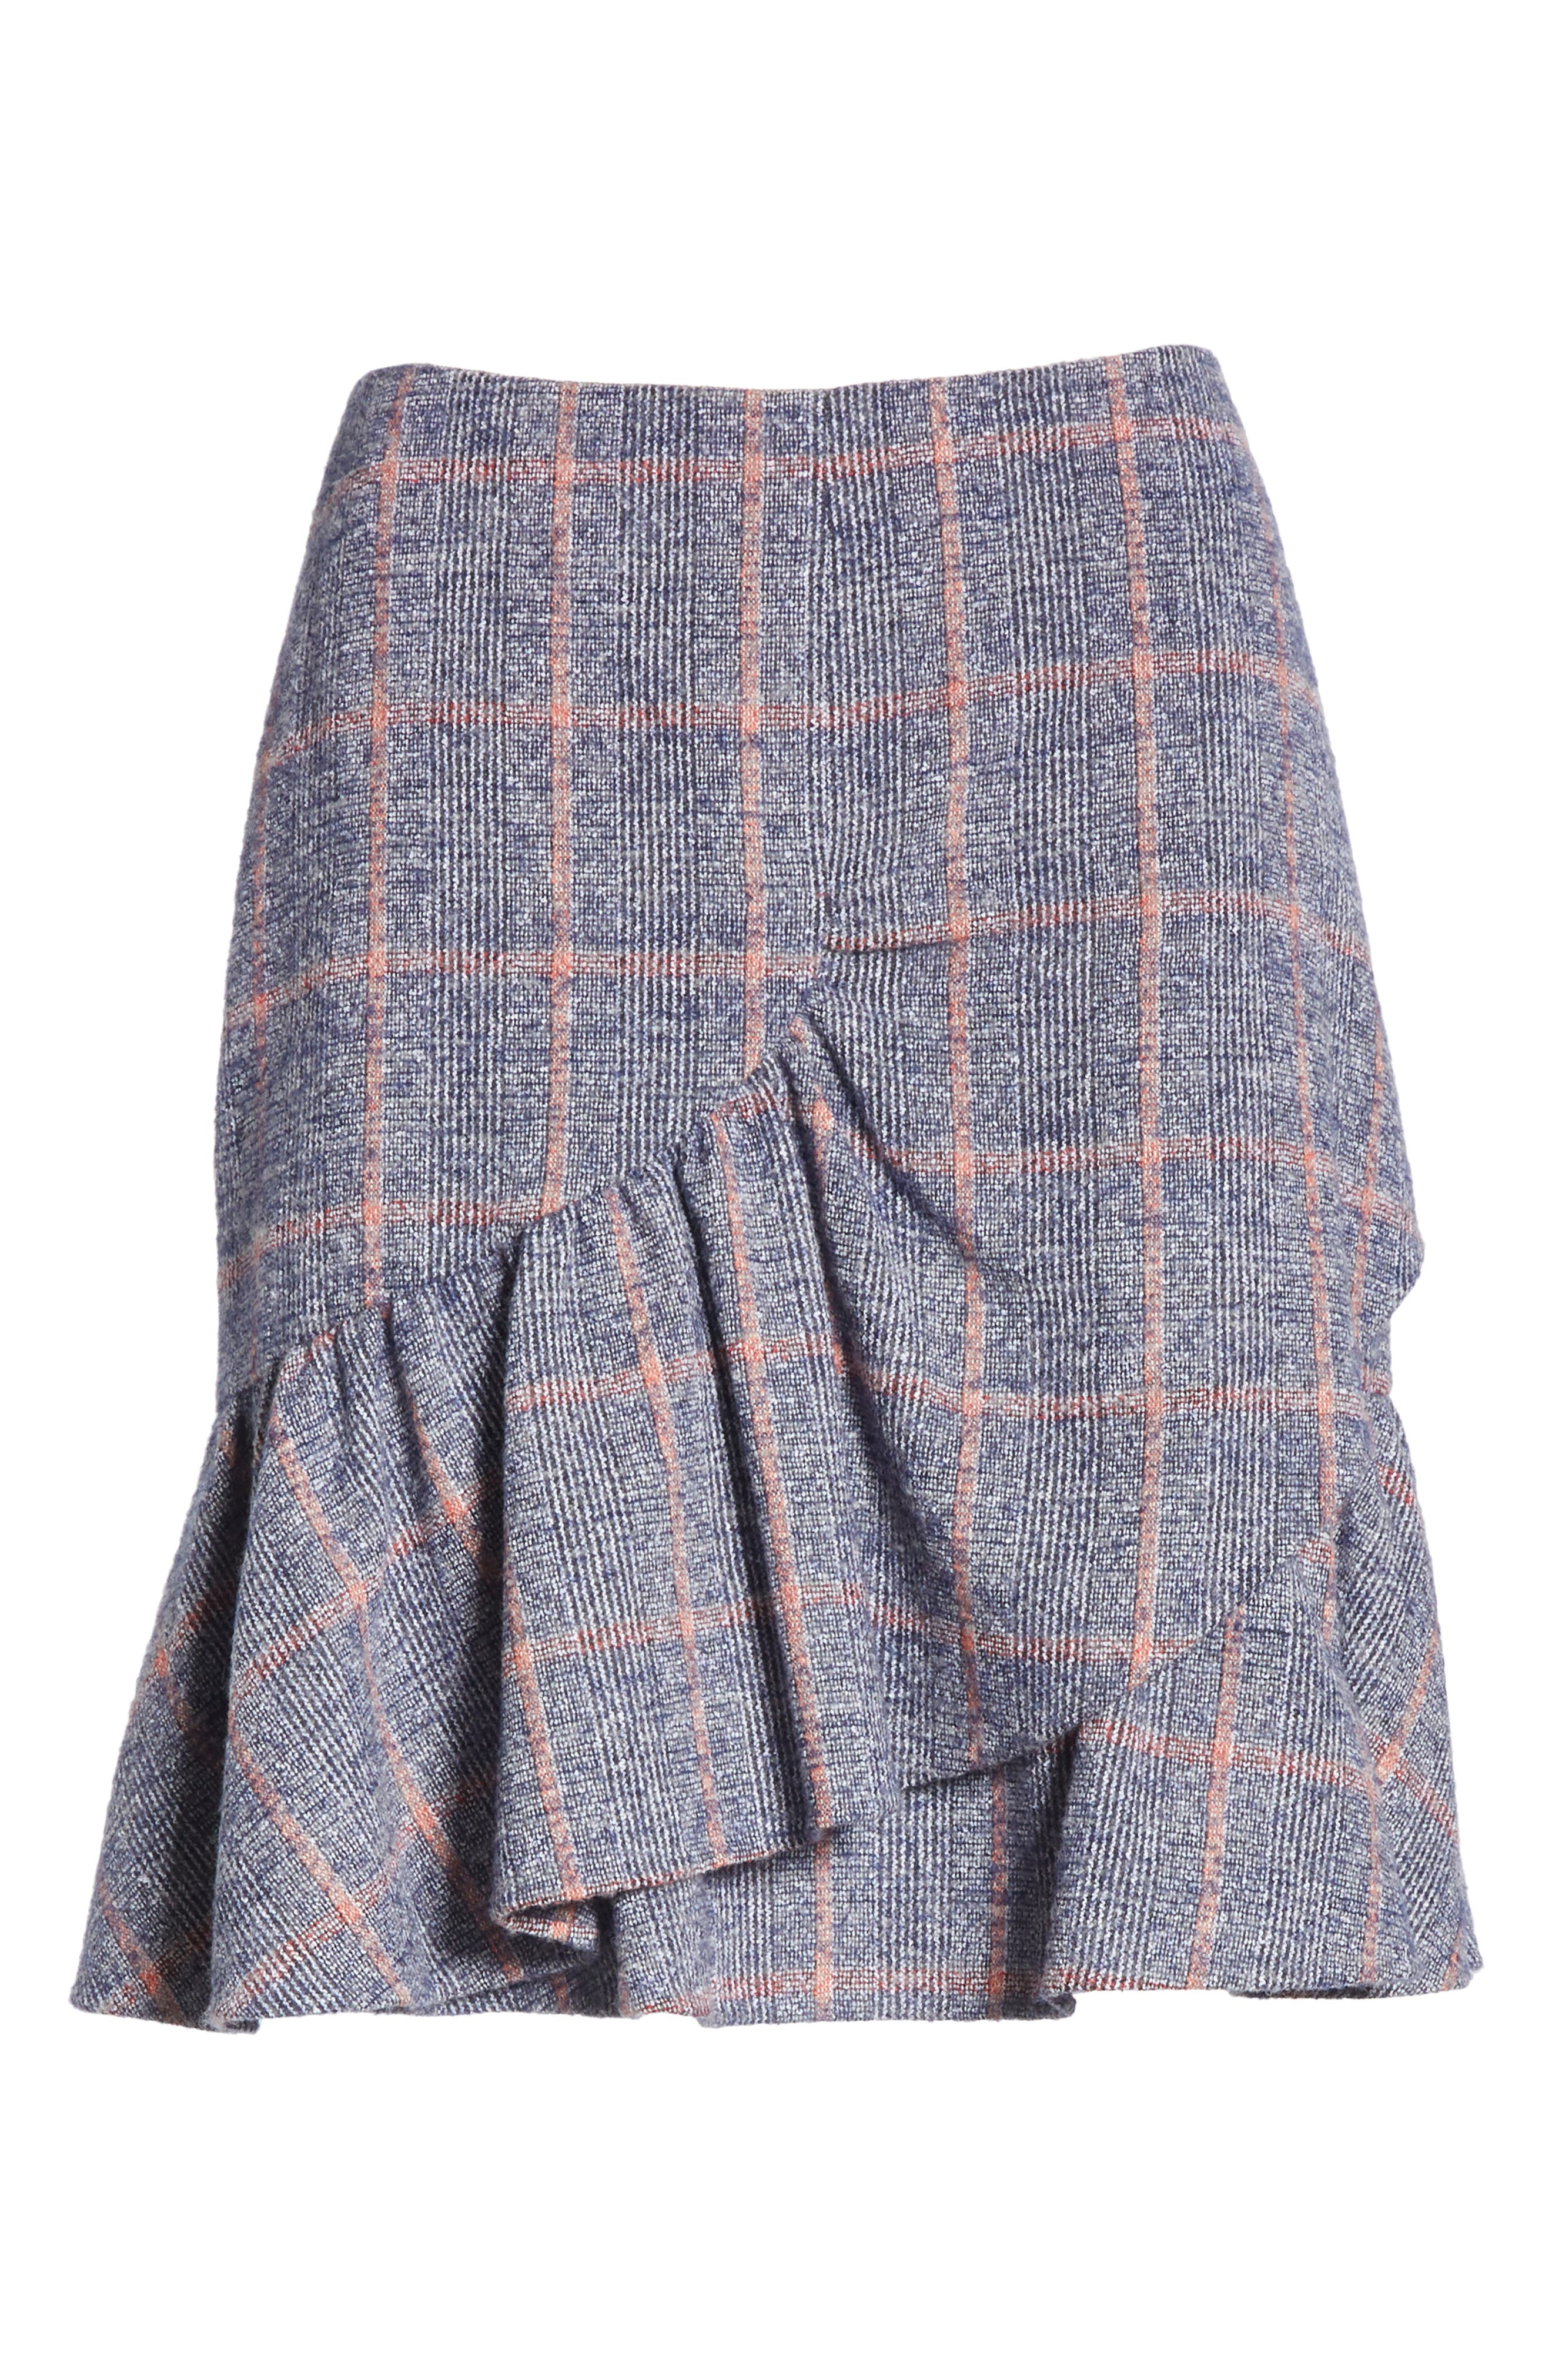 Cotton Wool Blend Plaid Ruffle Mini Skirt,                             Alternate thumbnail 6, color,                             482